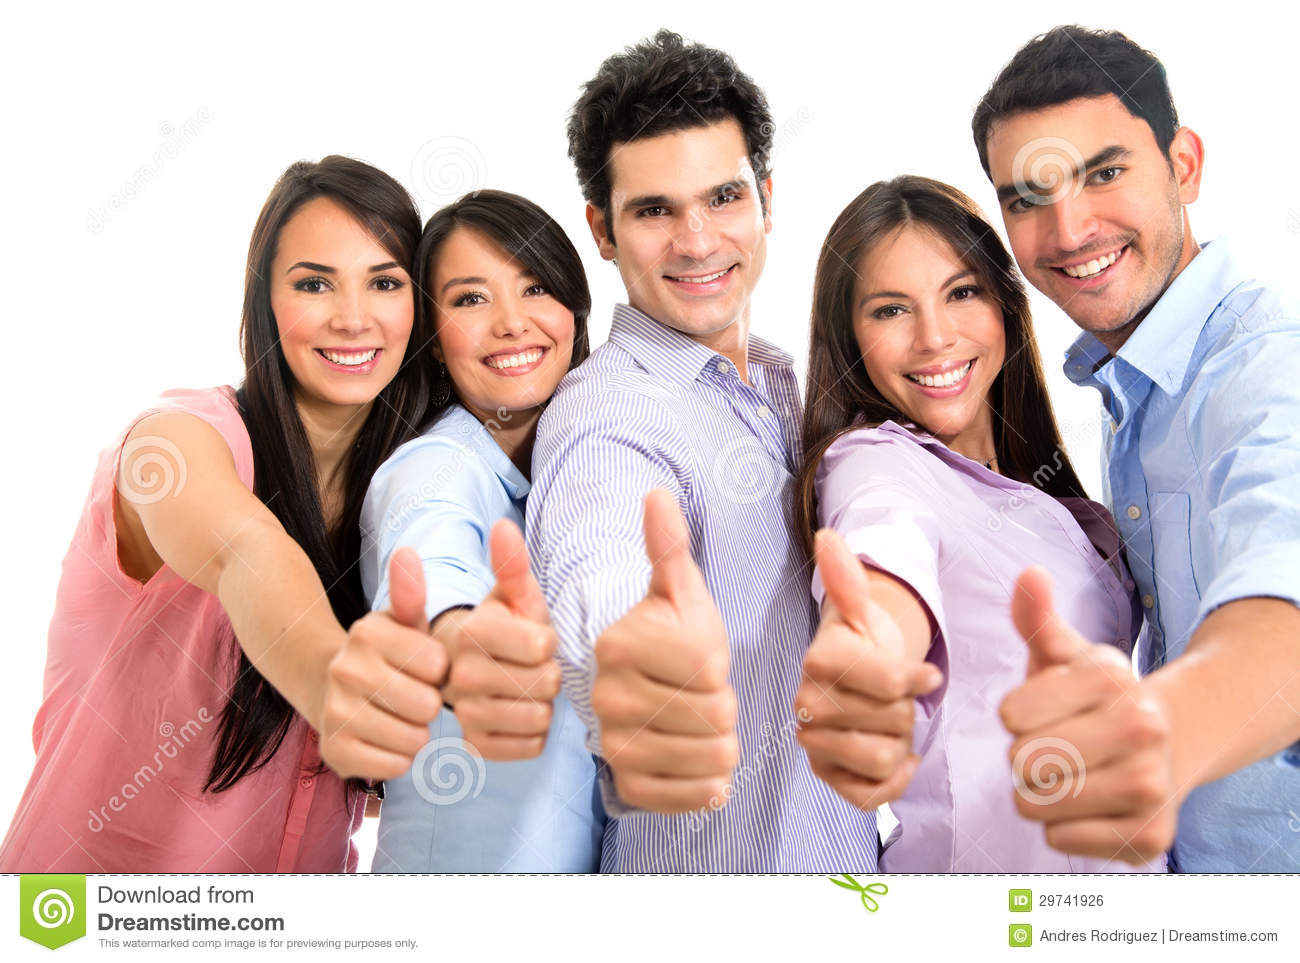 happy-group-people-thumbs-up-isolated-ov